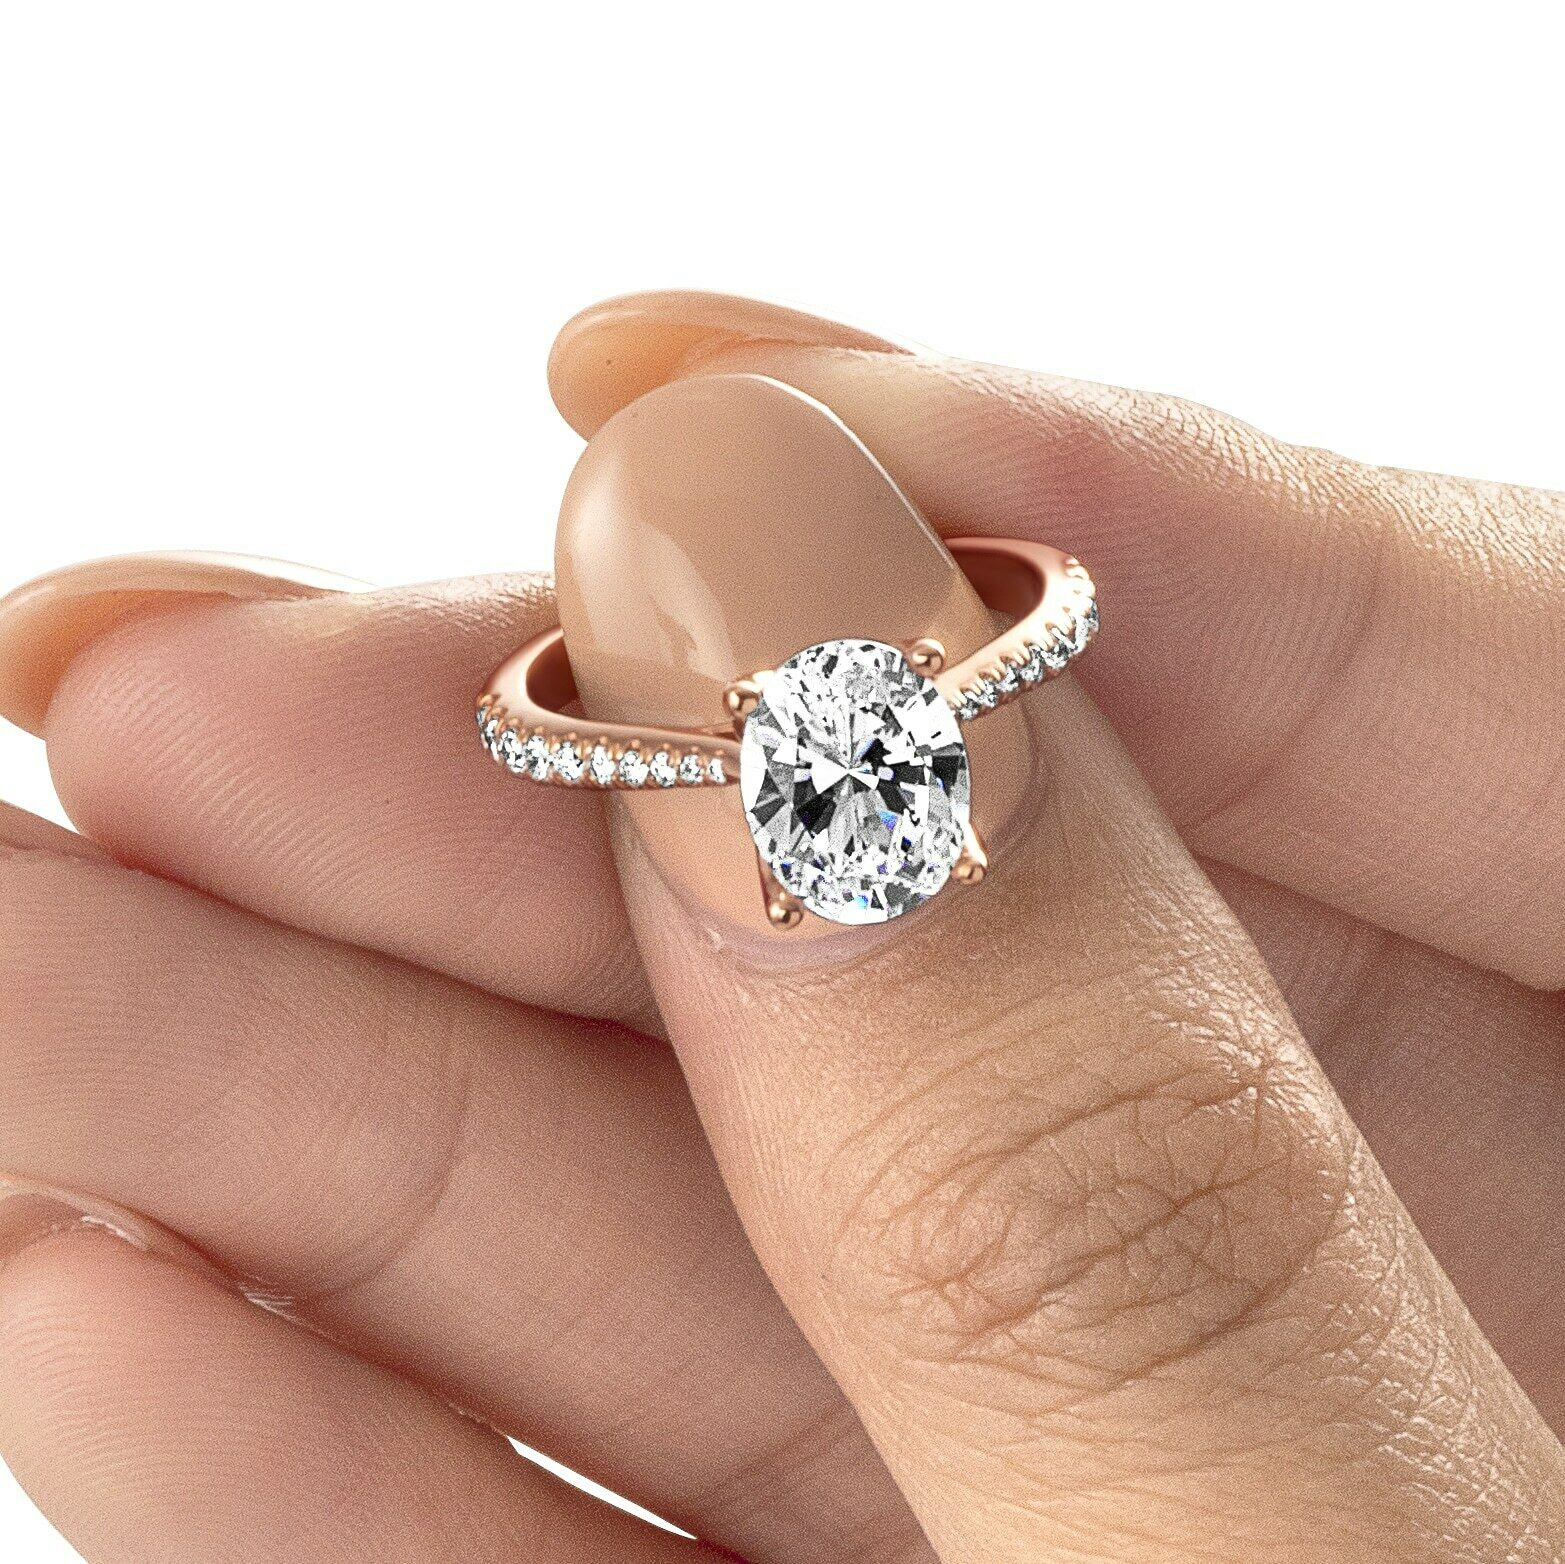 Gorgeous 1.75 Ct Oval Cut Diamond Prong & Pave Engagement Ring G,VS1 GIA 18K WG